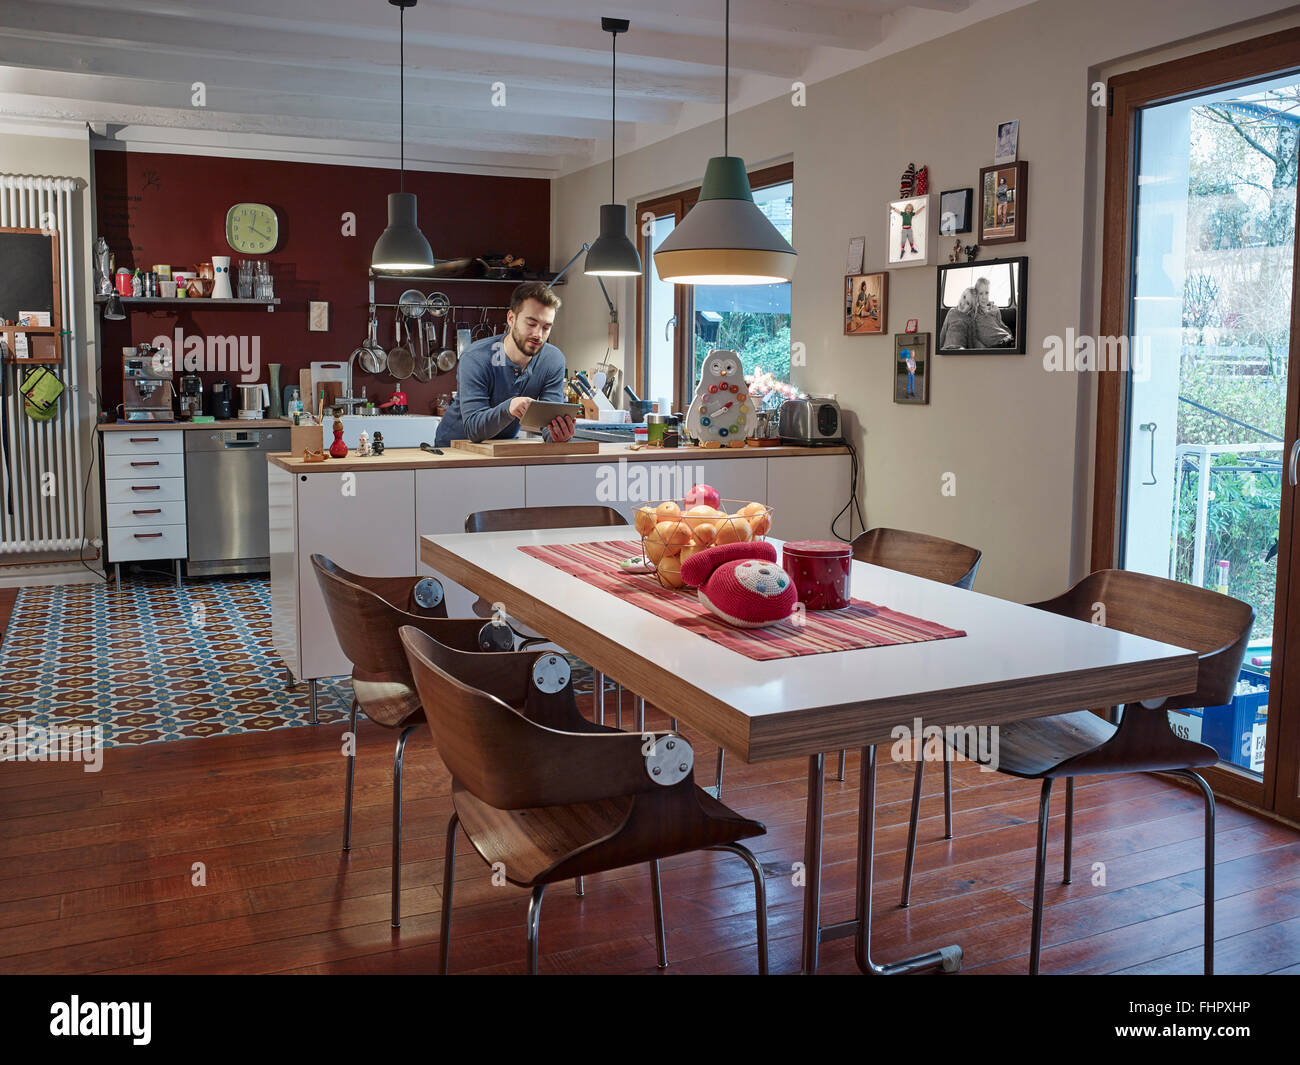 Young man using digital tablet in open plan kitchen - Stock Image